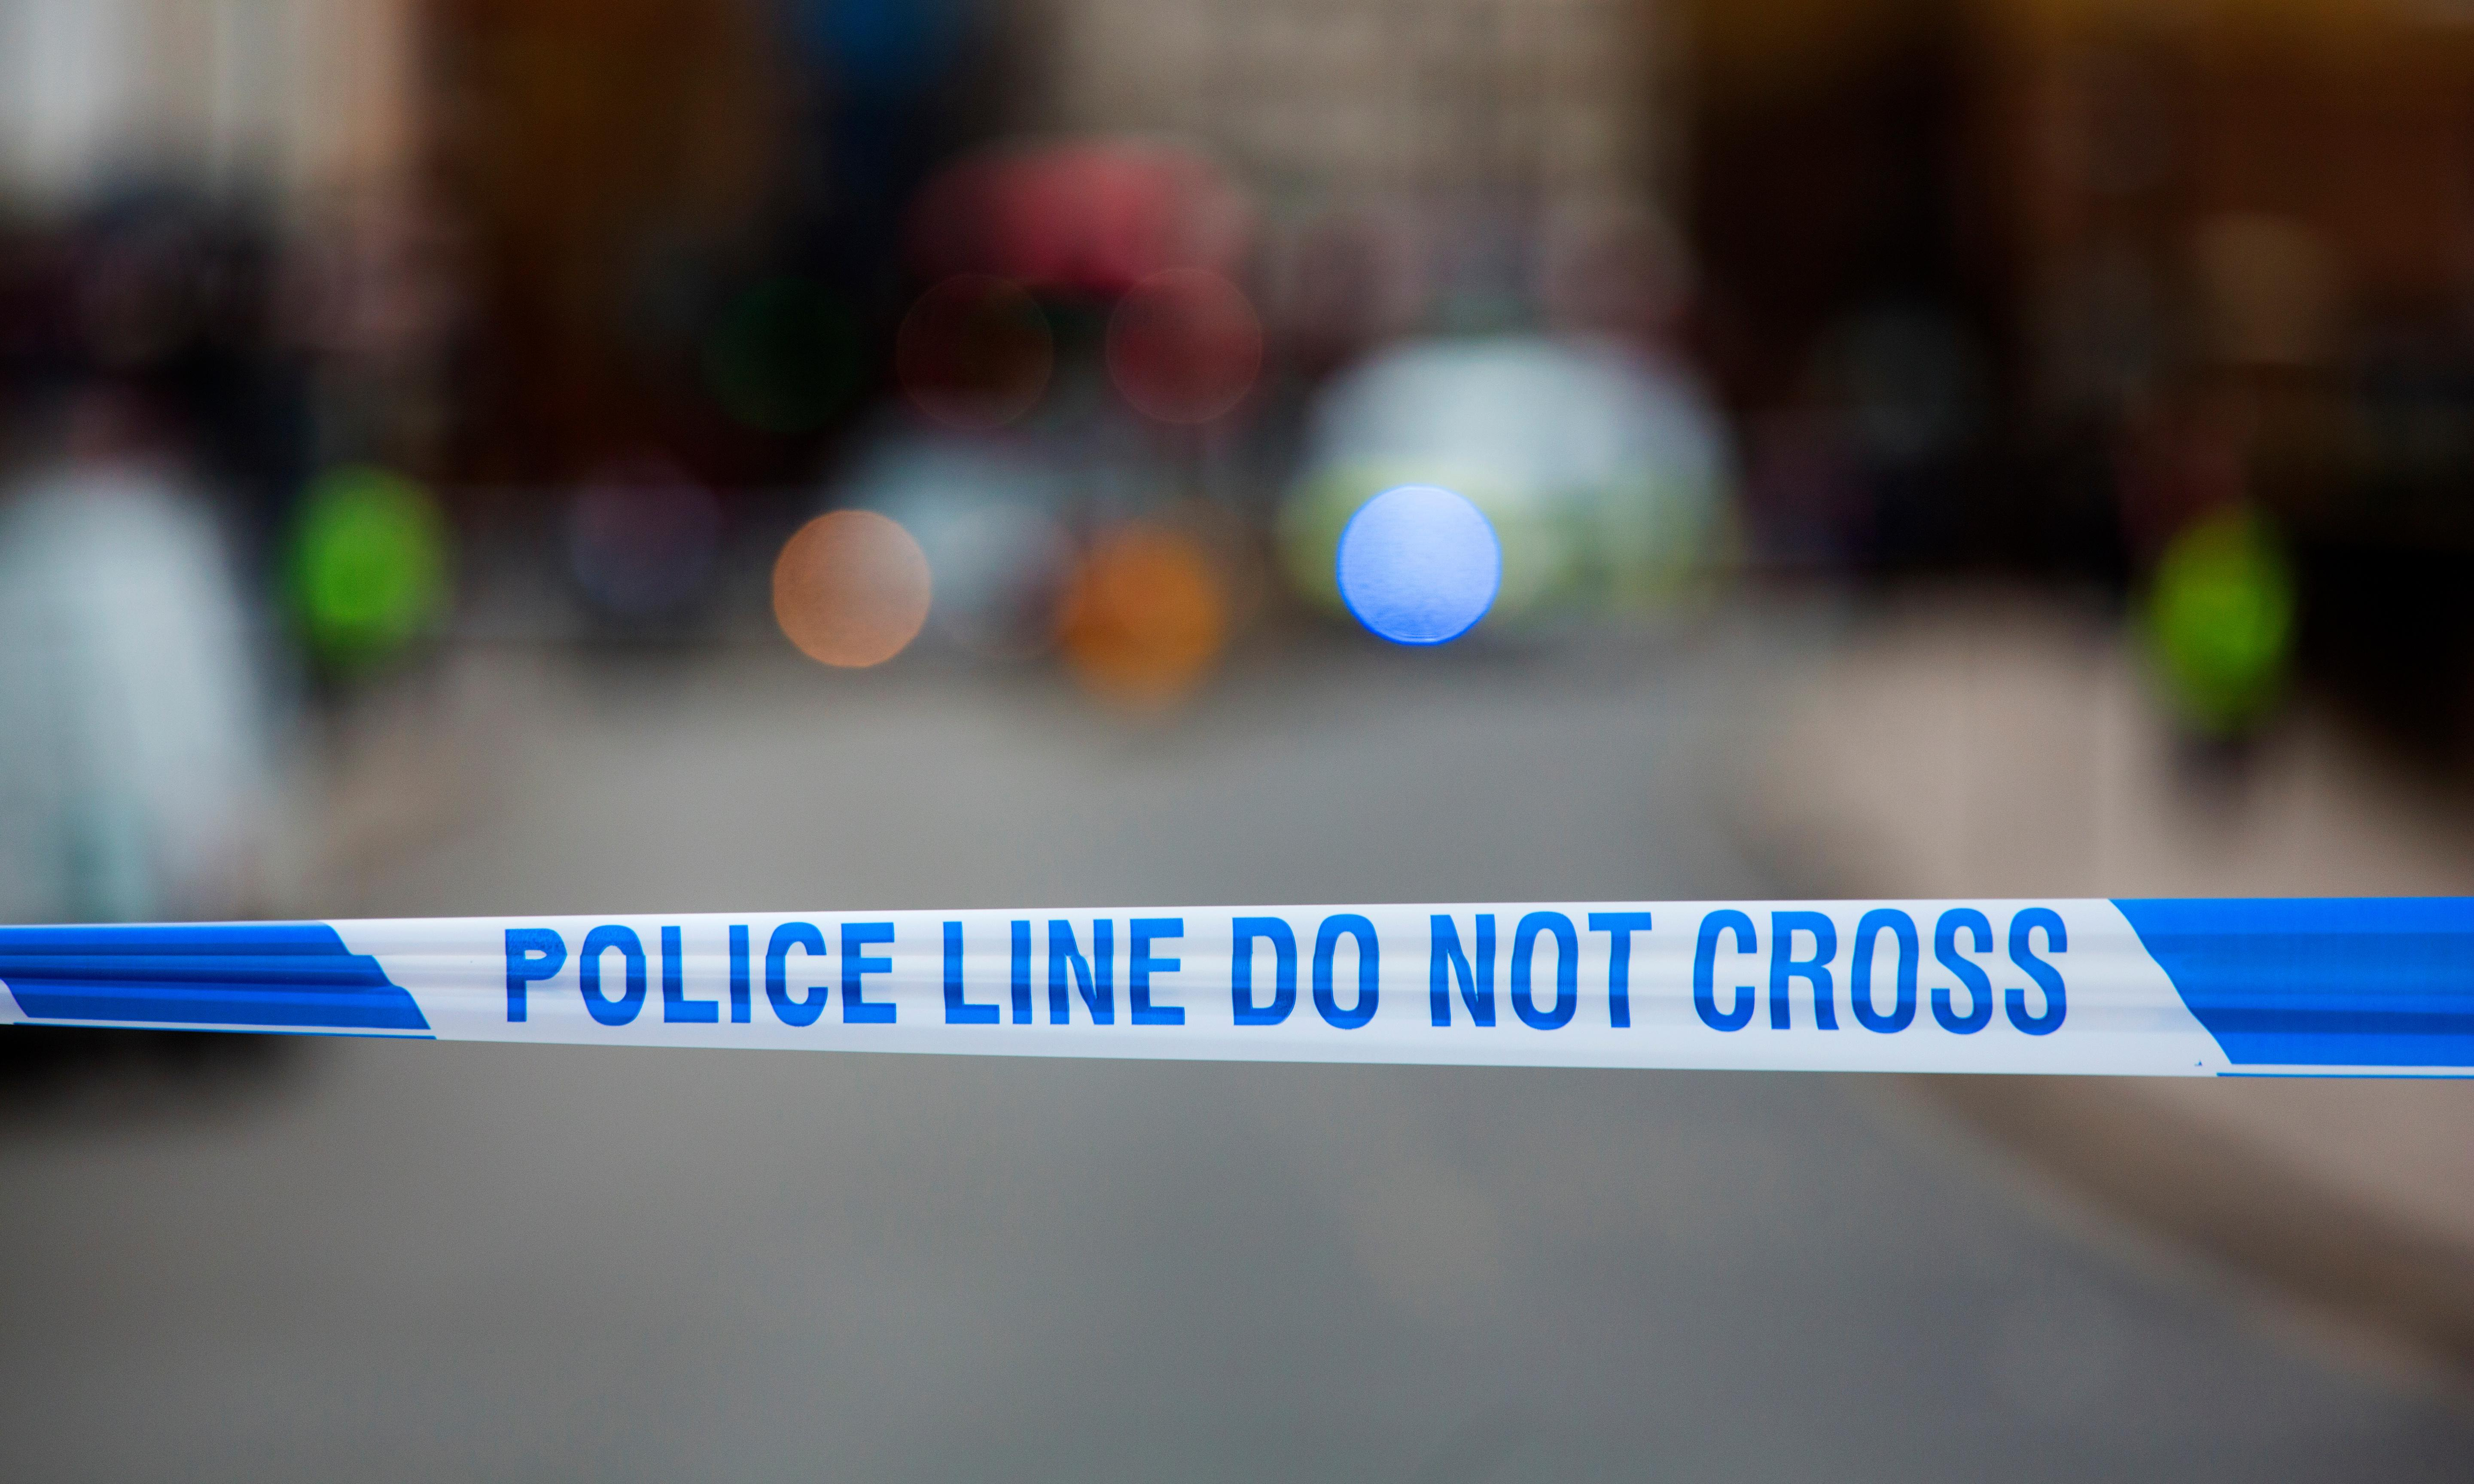 Five arrested for affray after car driven into group in London